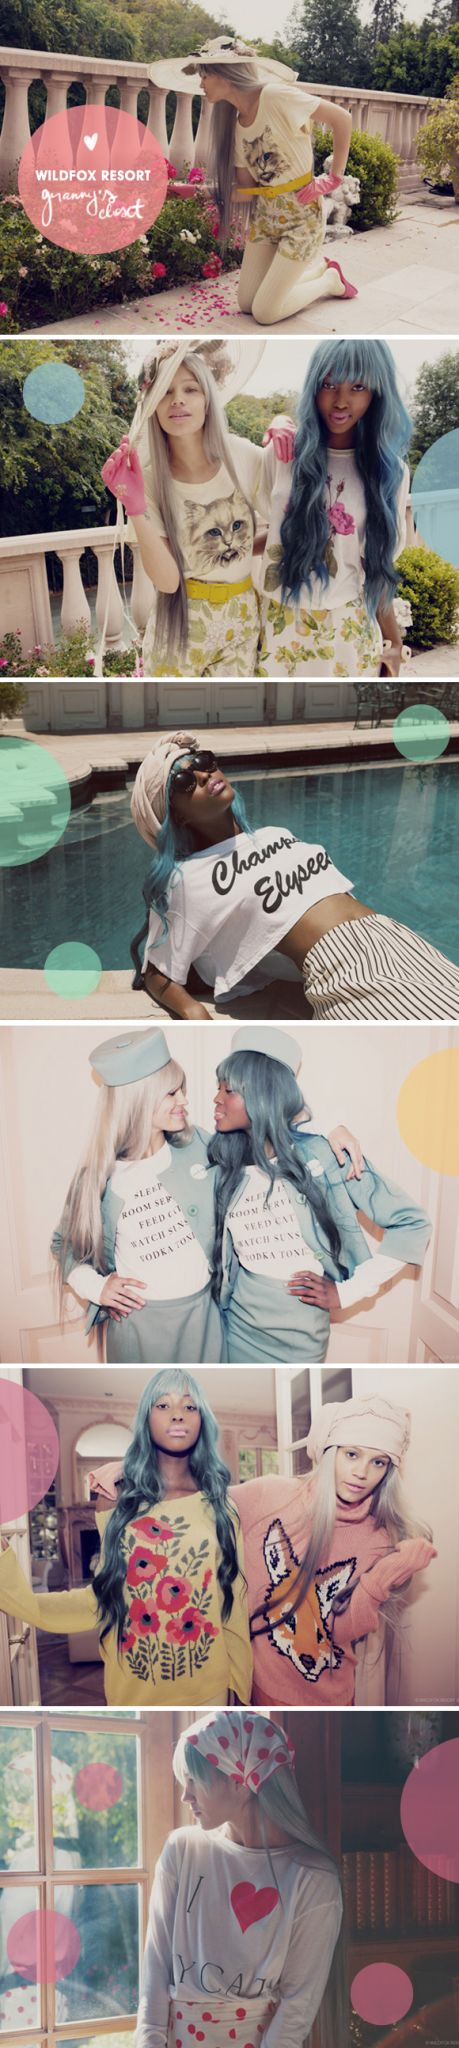 Achados da Bia | Wildfox Resort 2013